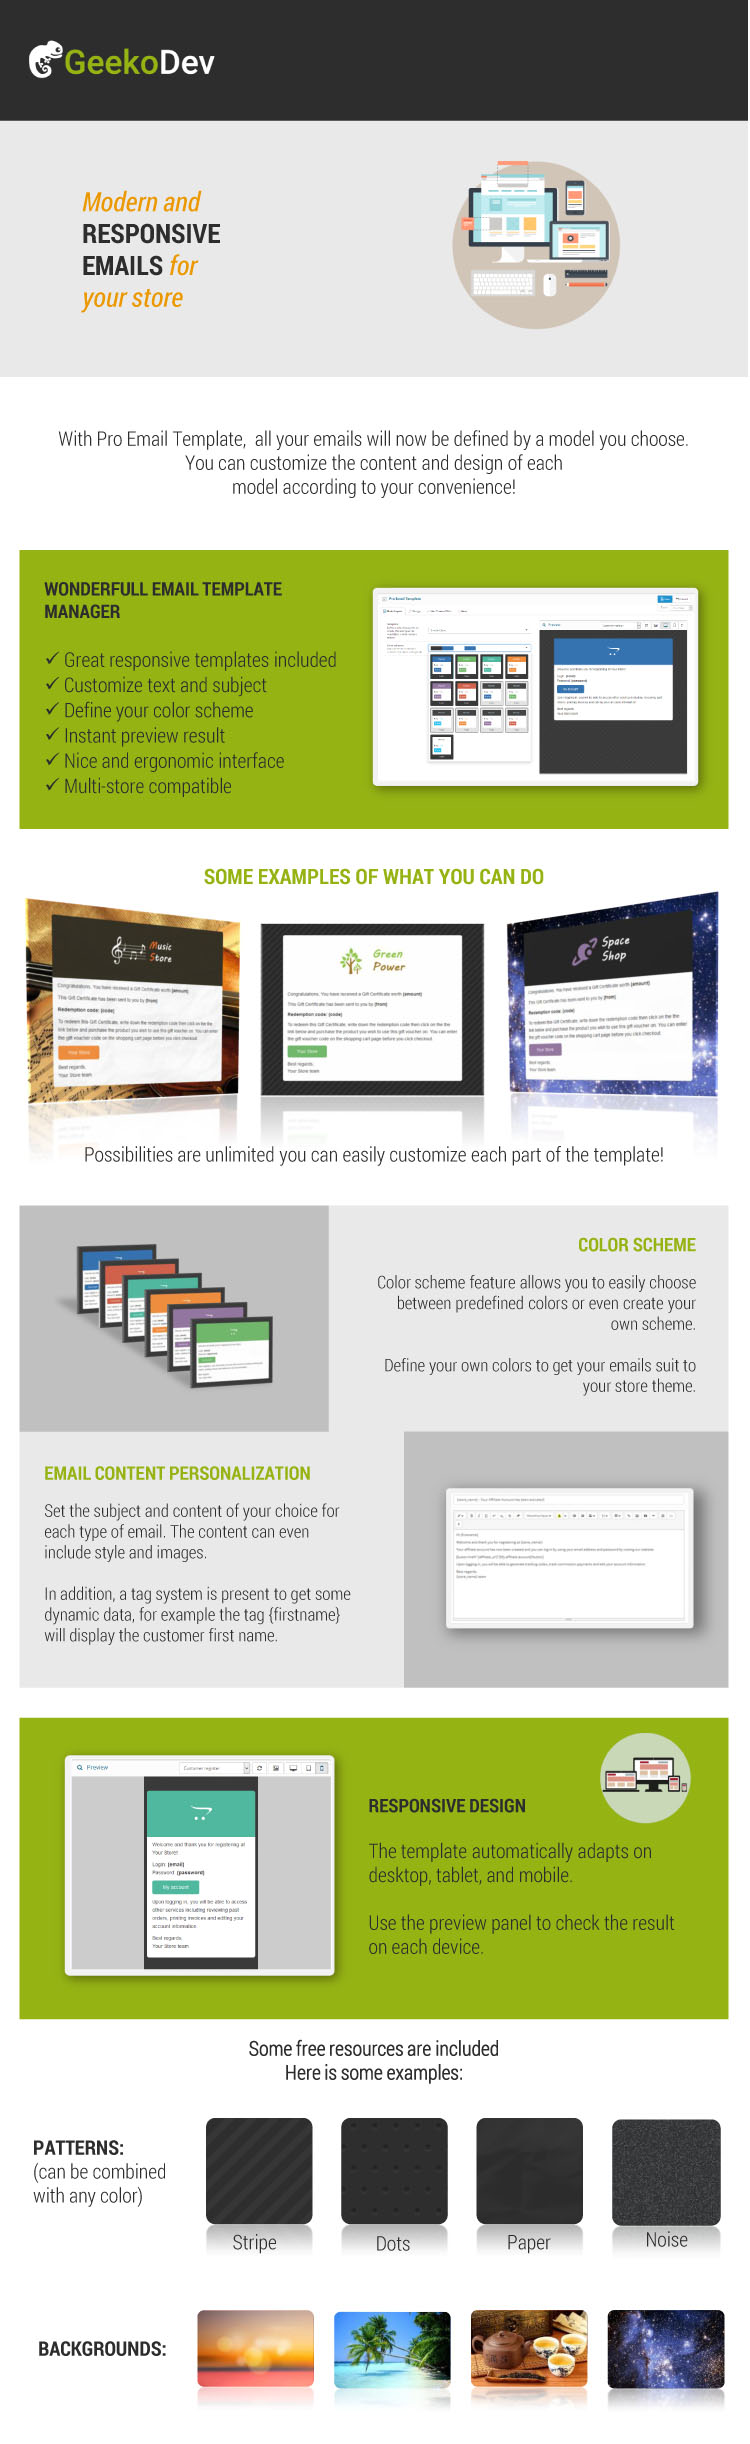 Us Commercial Invoice Excel Opencart  Pro Email Template Bookkeeping Invoice Excel with Cost Of Processing An Invoice Pdf Pro Email Template You May Also Be Interested By These Best Selling  Modules  Complete Seo Package  Pdf Invoice Pro Internet Invoice Word